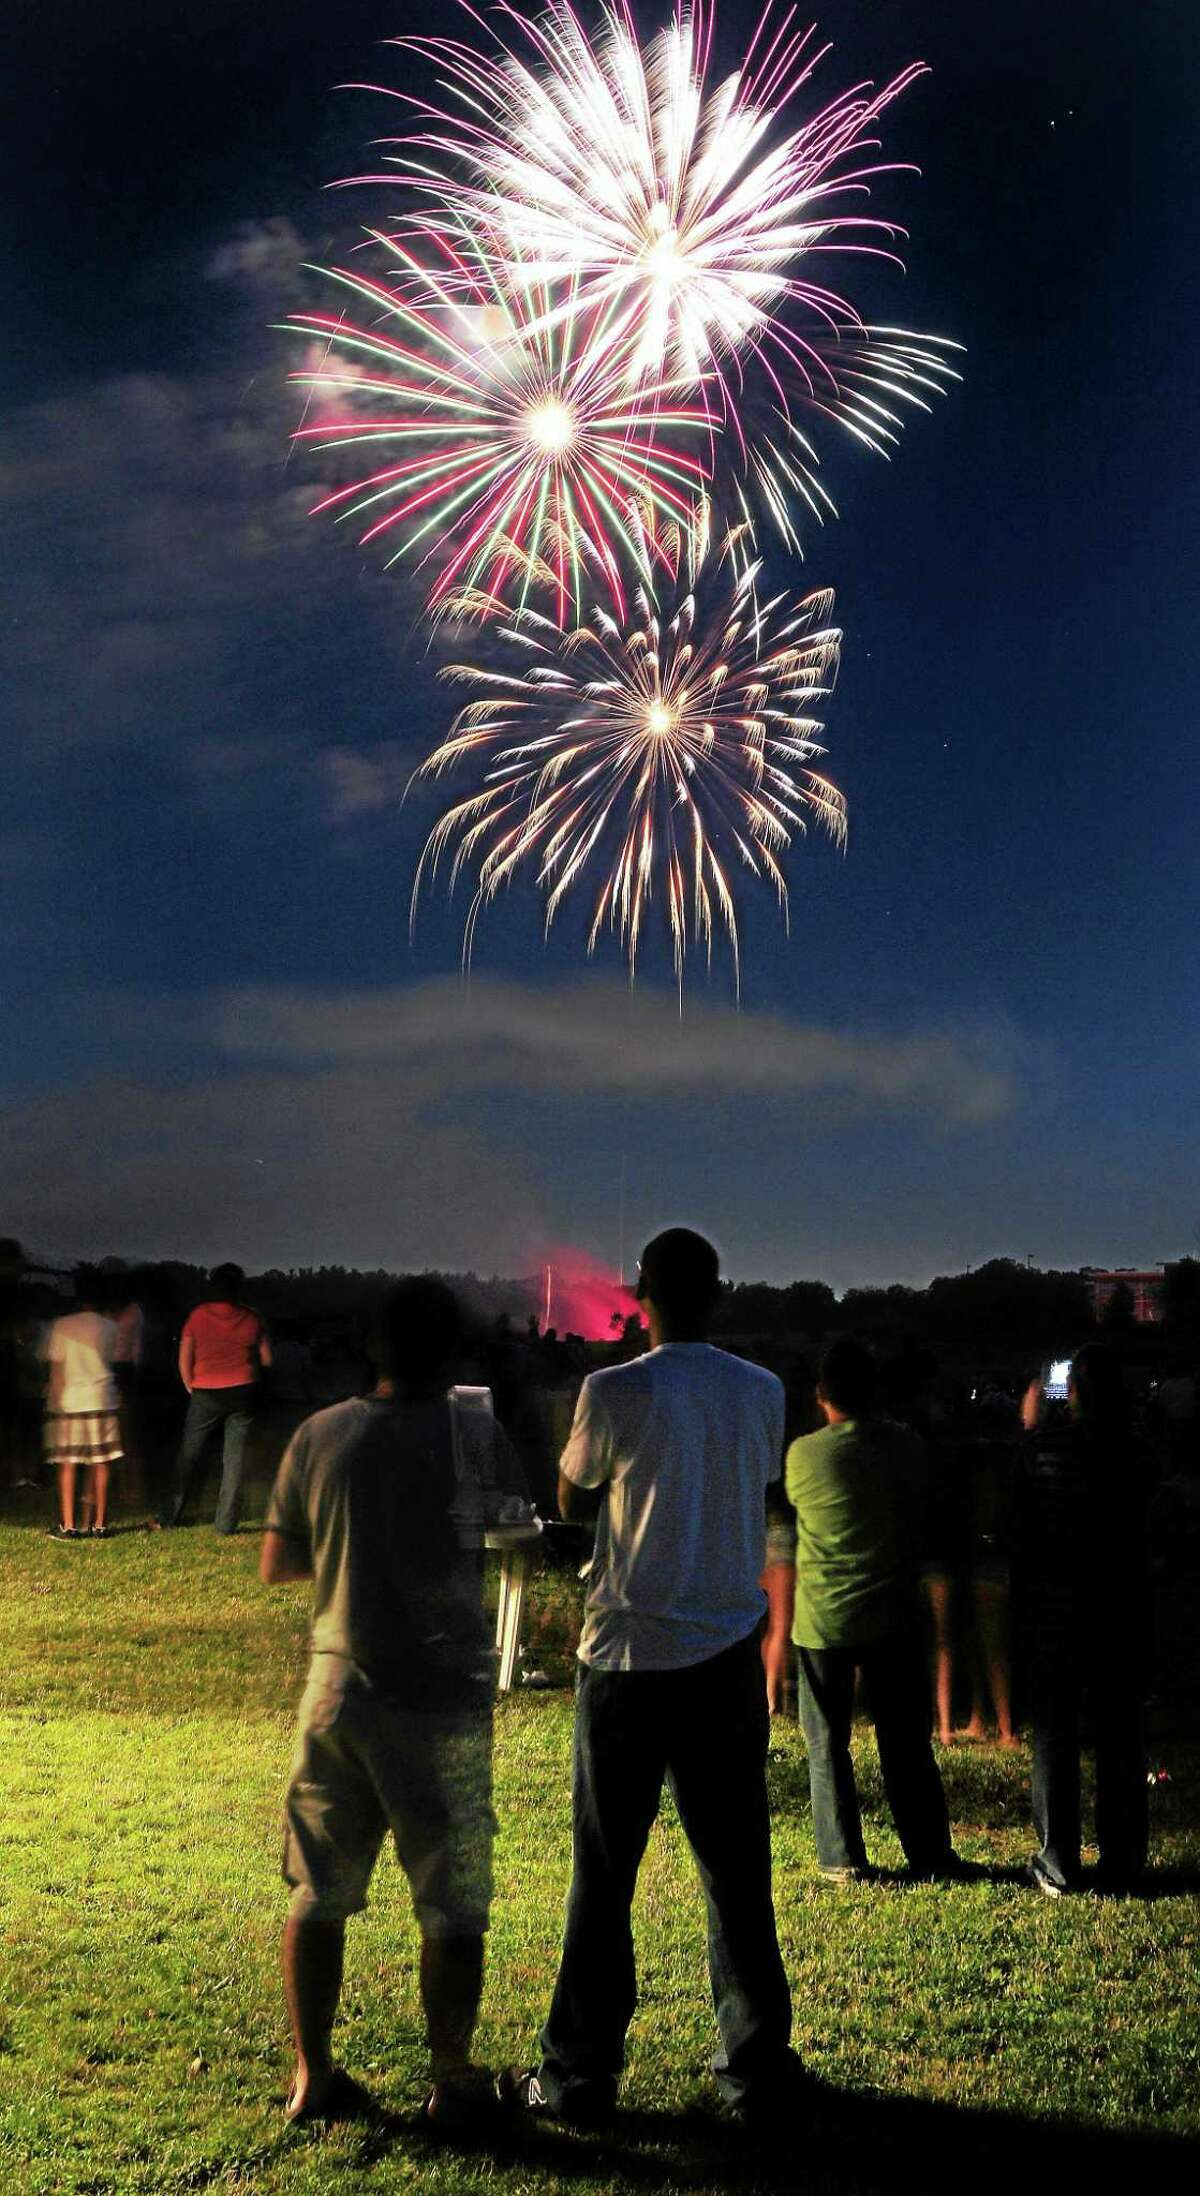 People watch the fireworks show at Town Center Park at Meadowbrook in Hamden on 7/1/2011. Photo by Arnold Gold/New Haven Register AG0417D